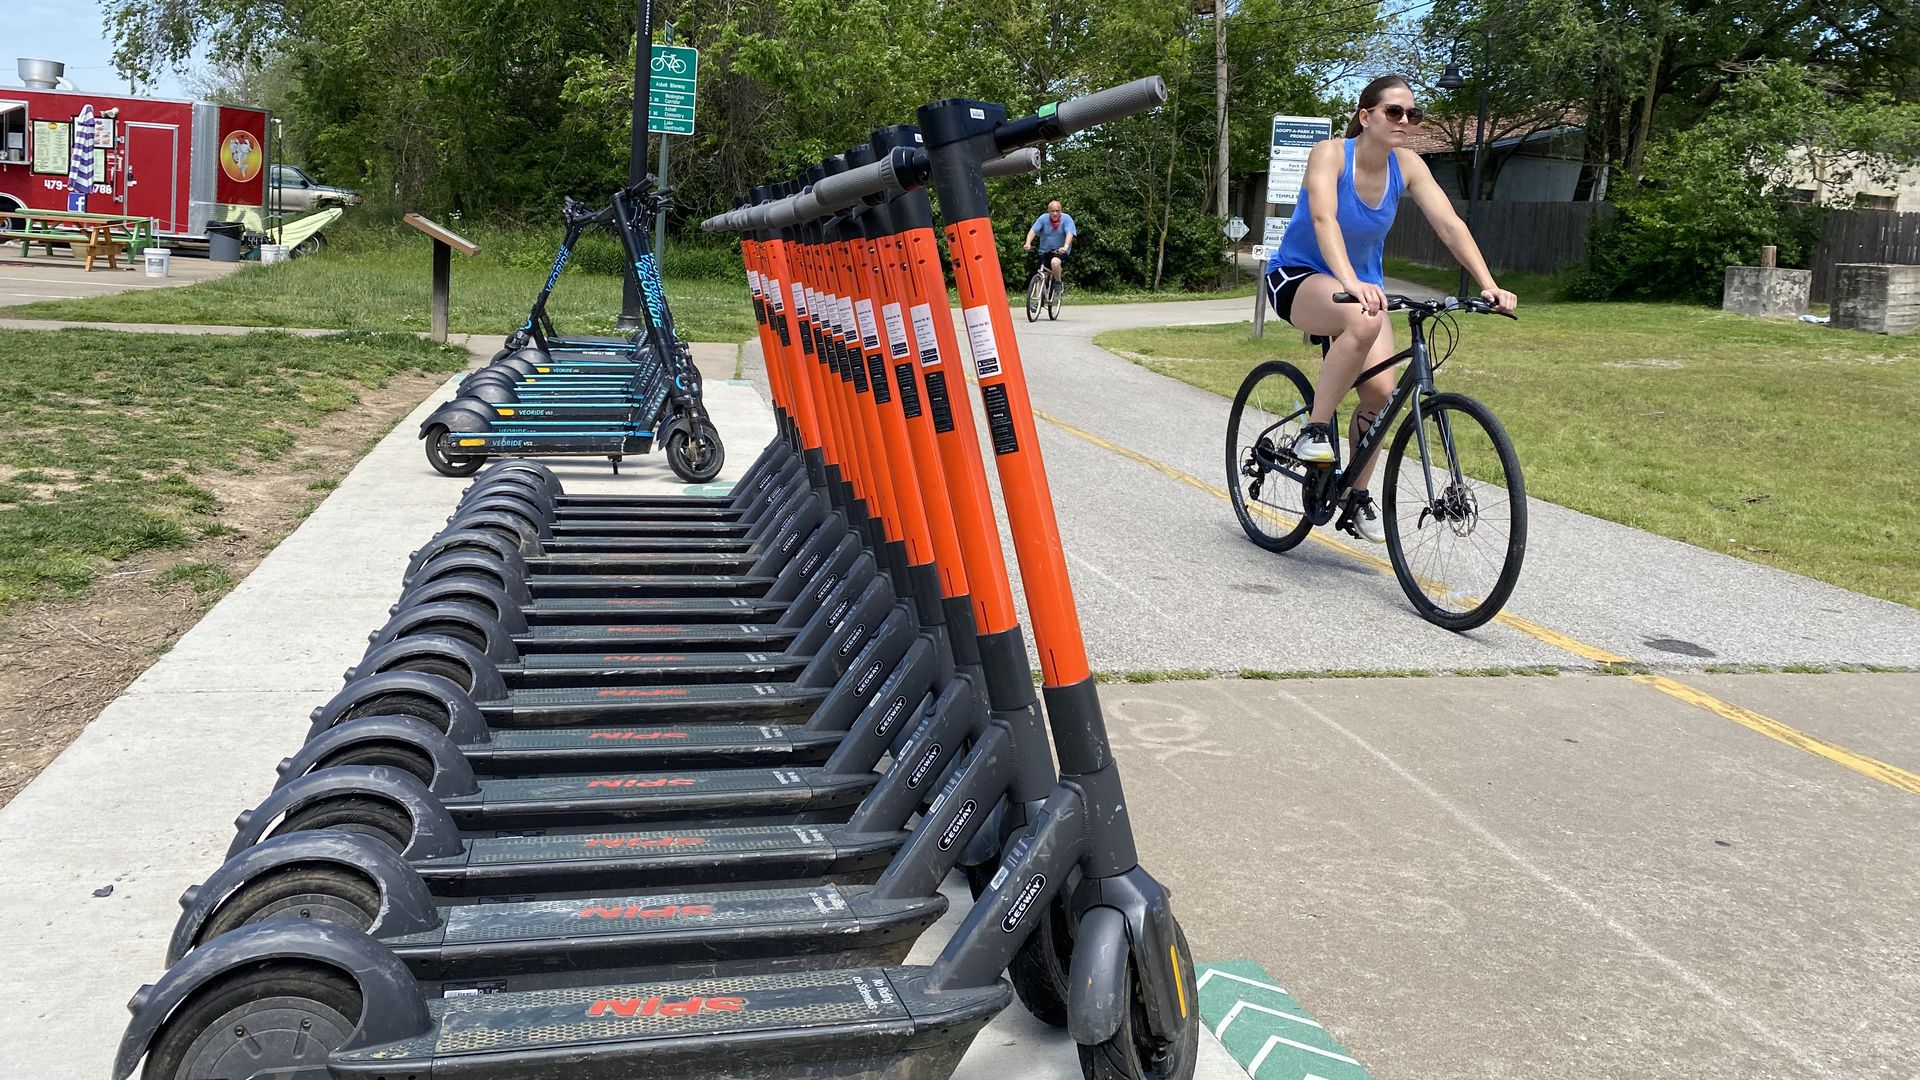 A woman rides a bike past a fleet of electric scooters